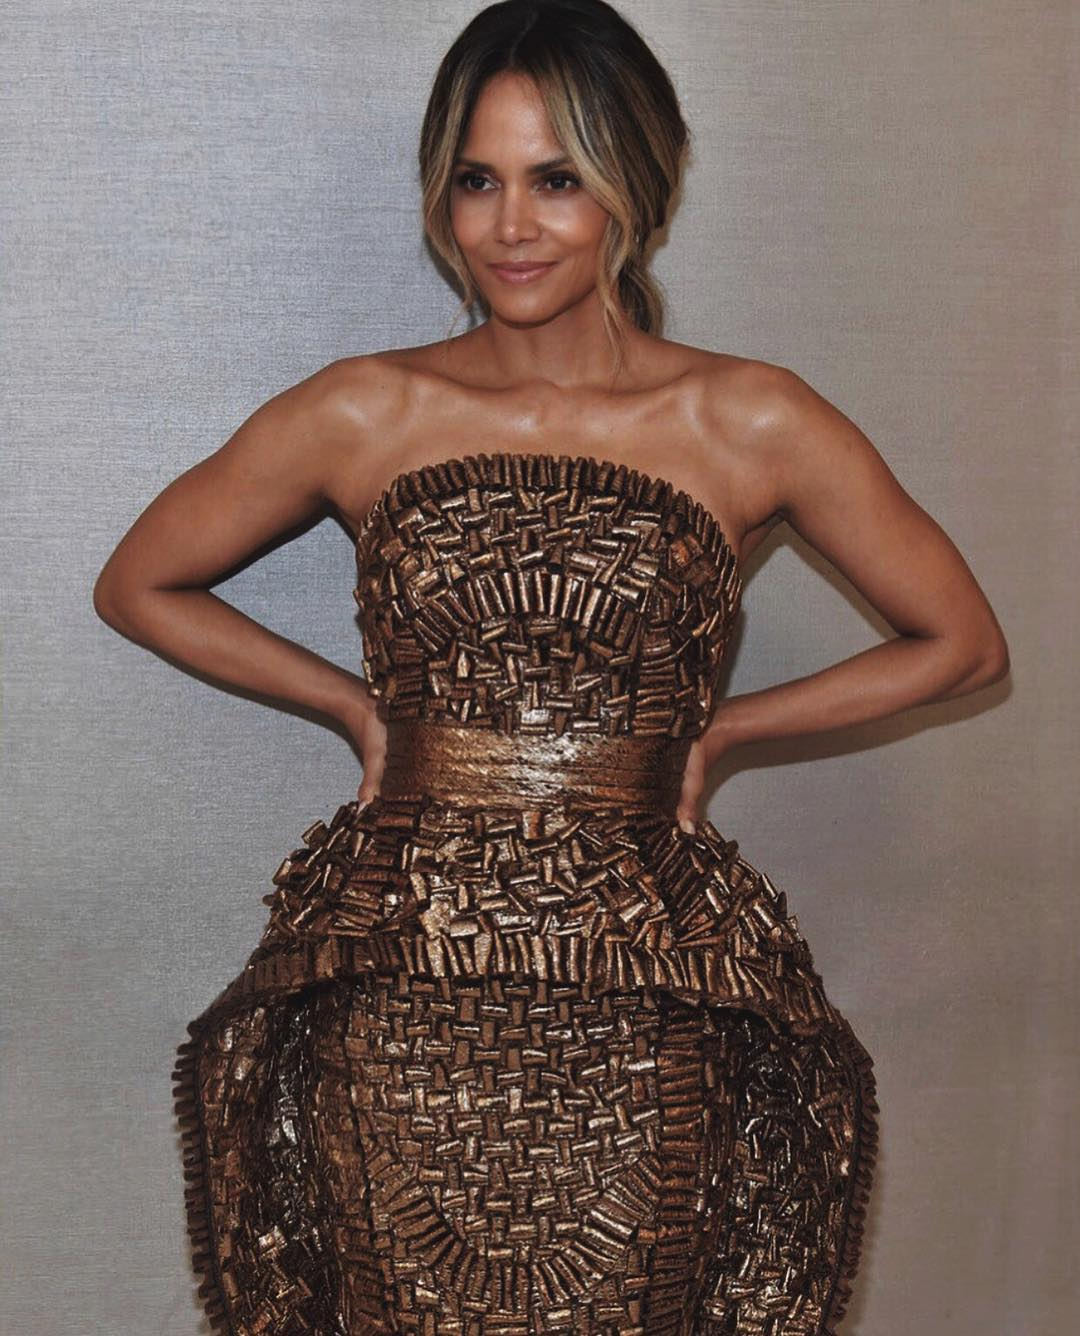 Halle Berry Revealed What She Eats In A Day To Stay In Such An Incredible Shape